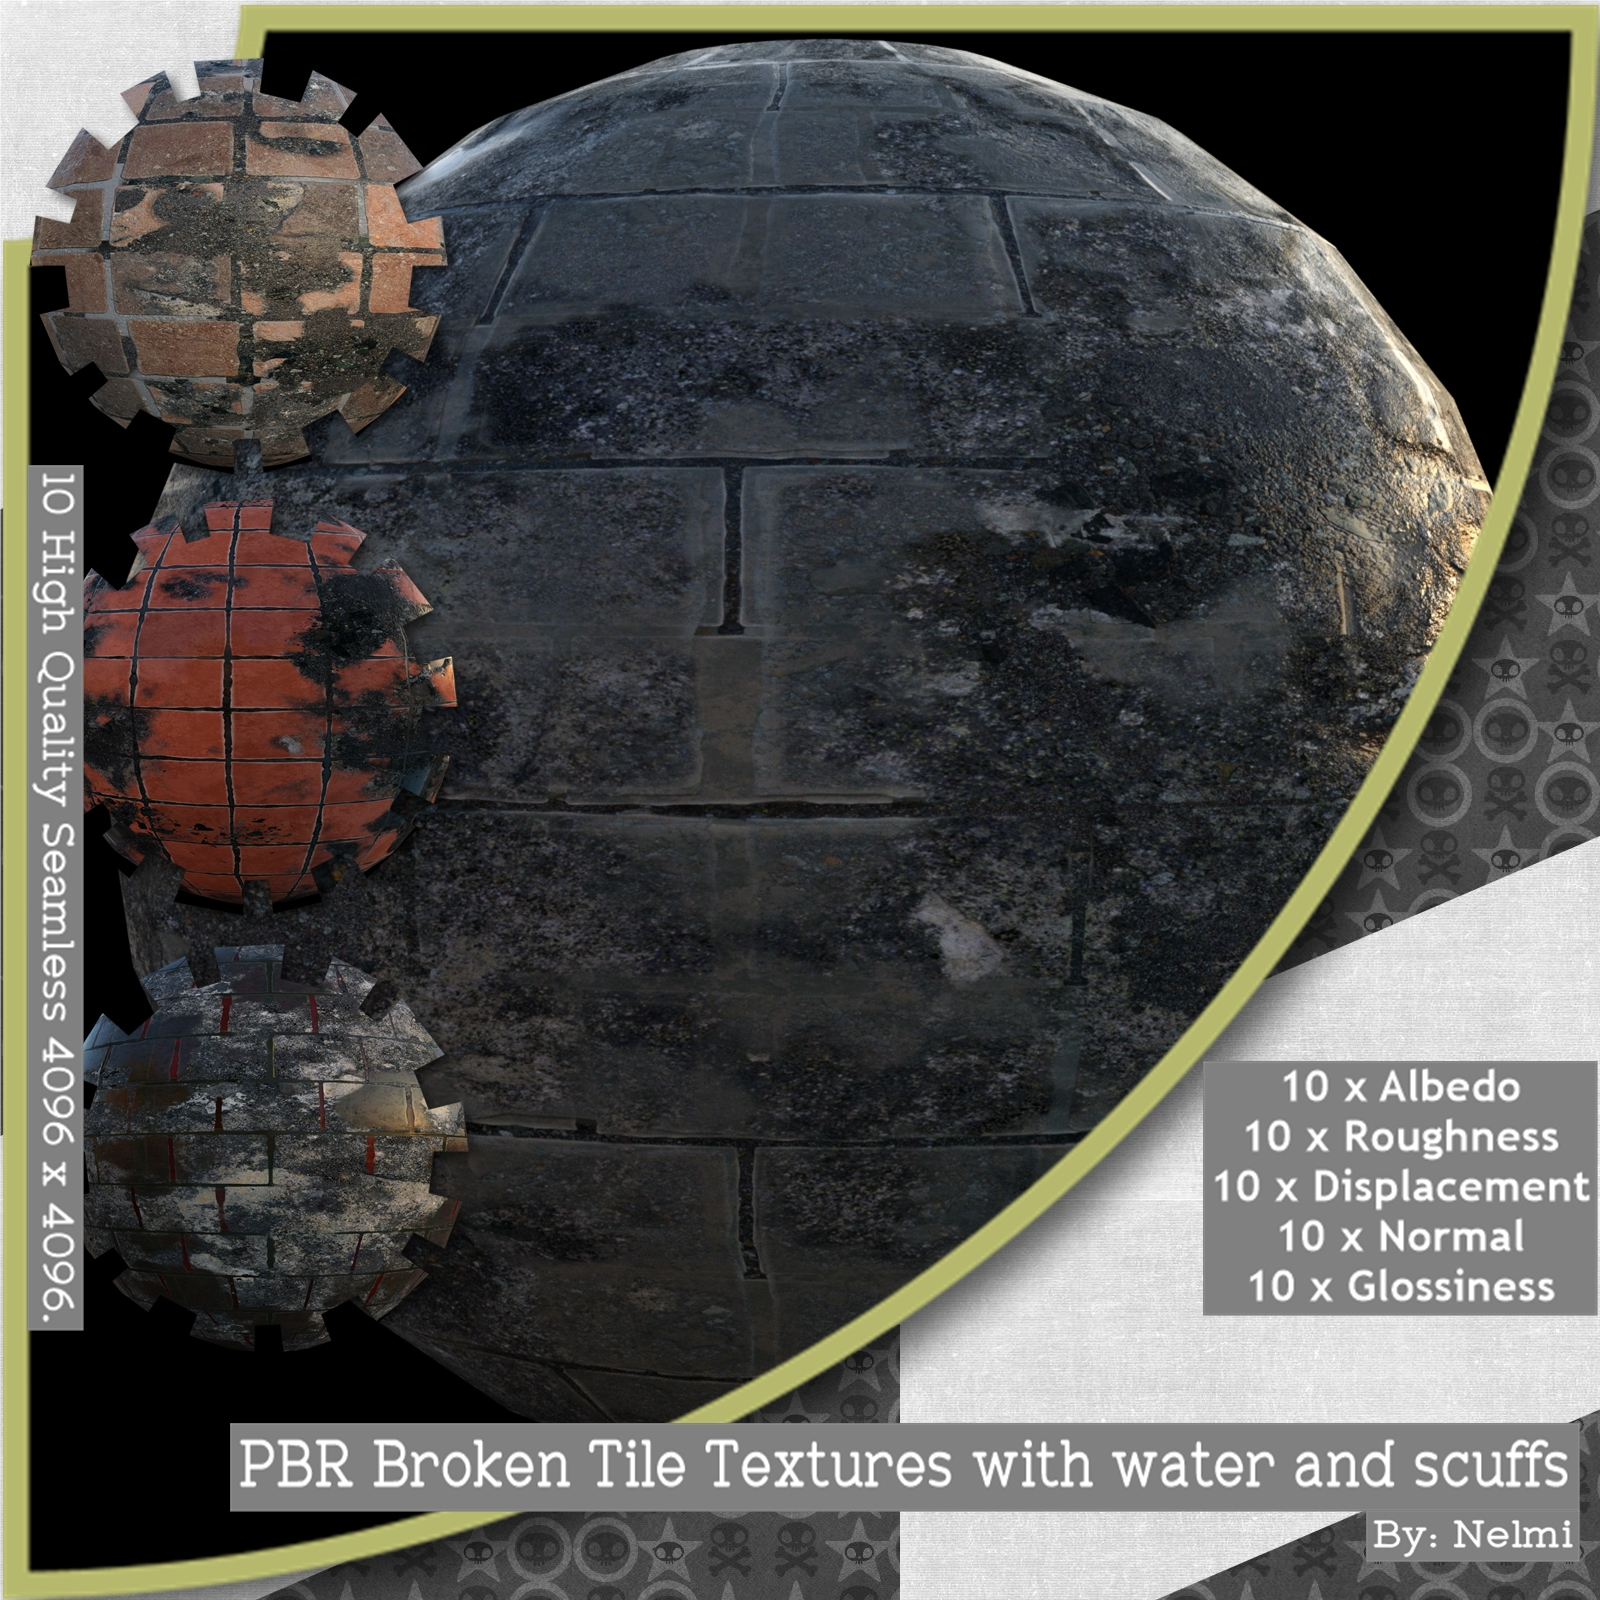 PBR Broken Tile Textures with water and scuffs